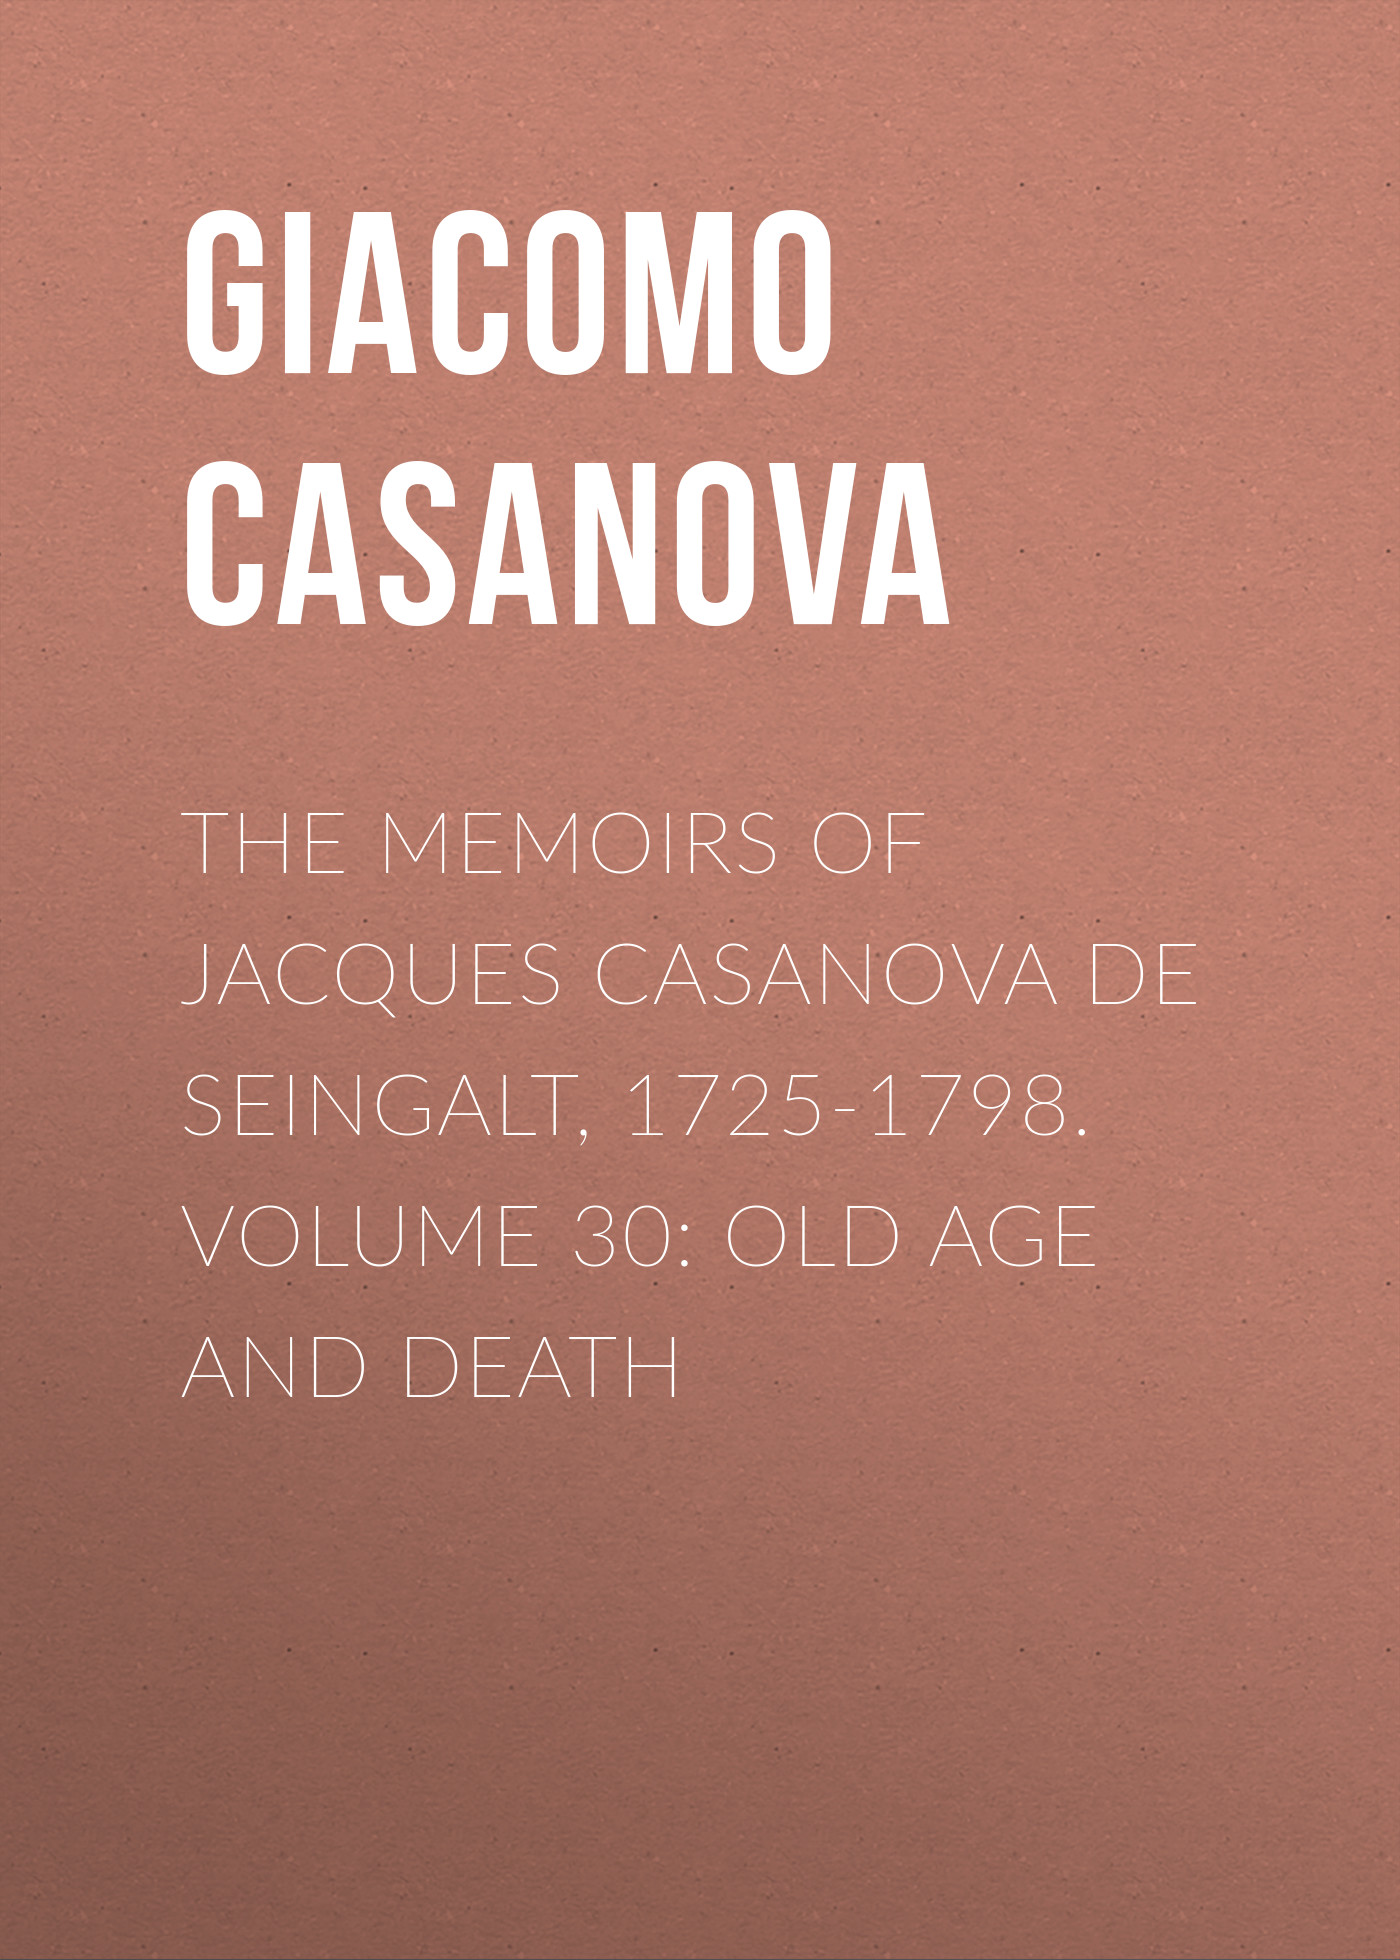 Giacomo Casanova The Memoirs of Jacques Casanova de Seingalt, 1725-1798. Volume 30: Old Age and Death batman volume 3 death of the family